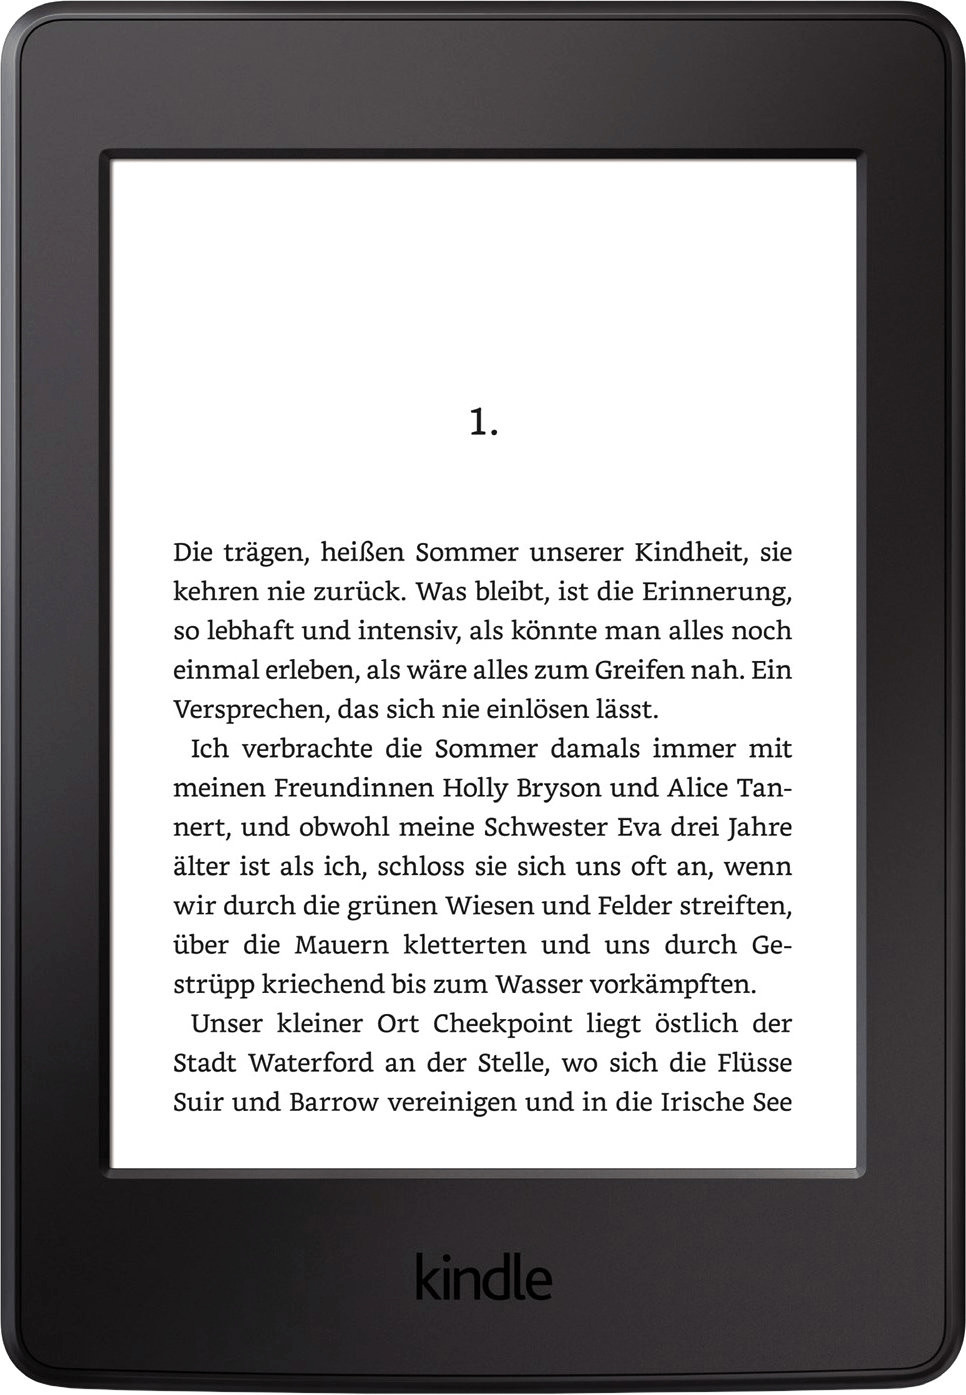 Kindle Paperwhite WiFi schwarz (2015)